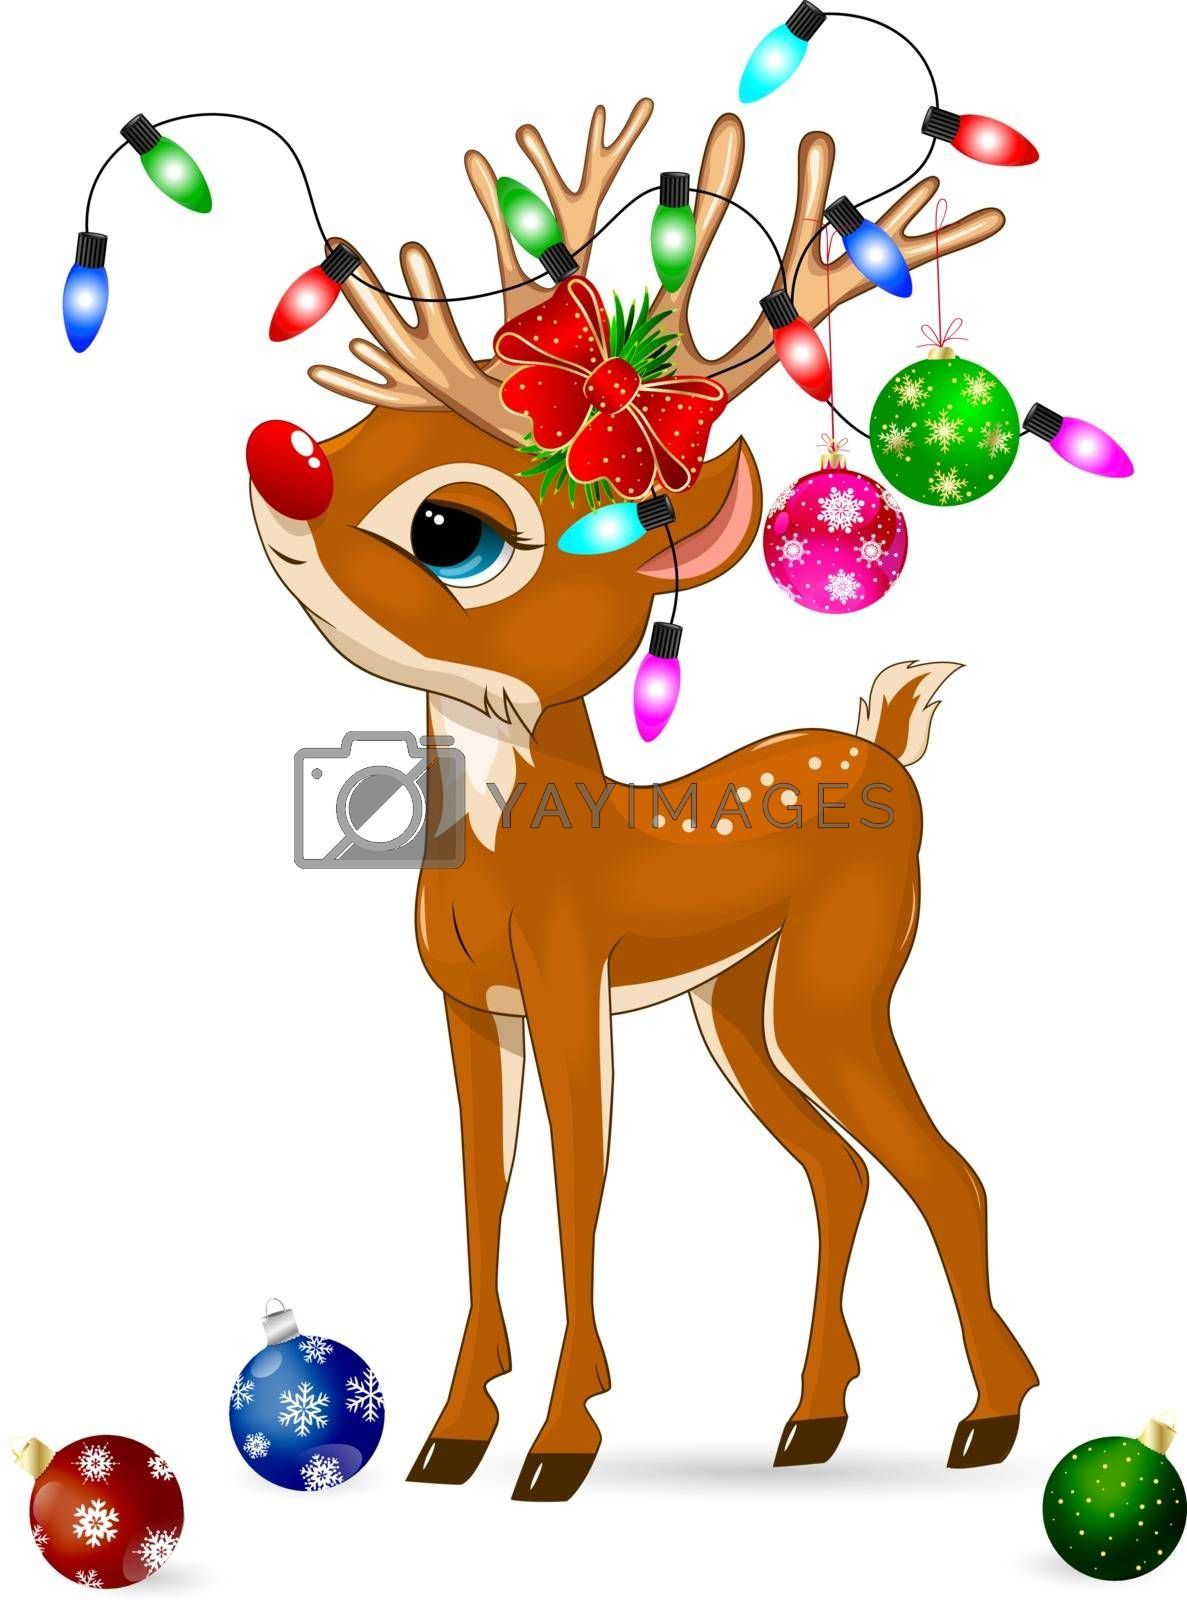 Little cartoon deer with Christmas decorations on a white background. Deer baby with a red nose.